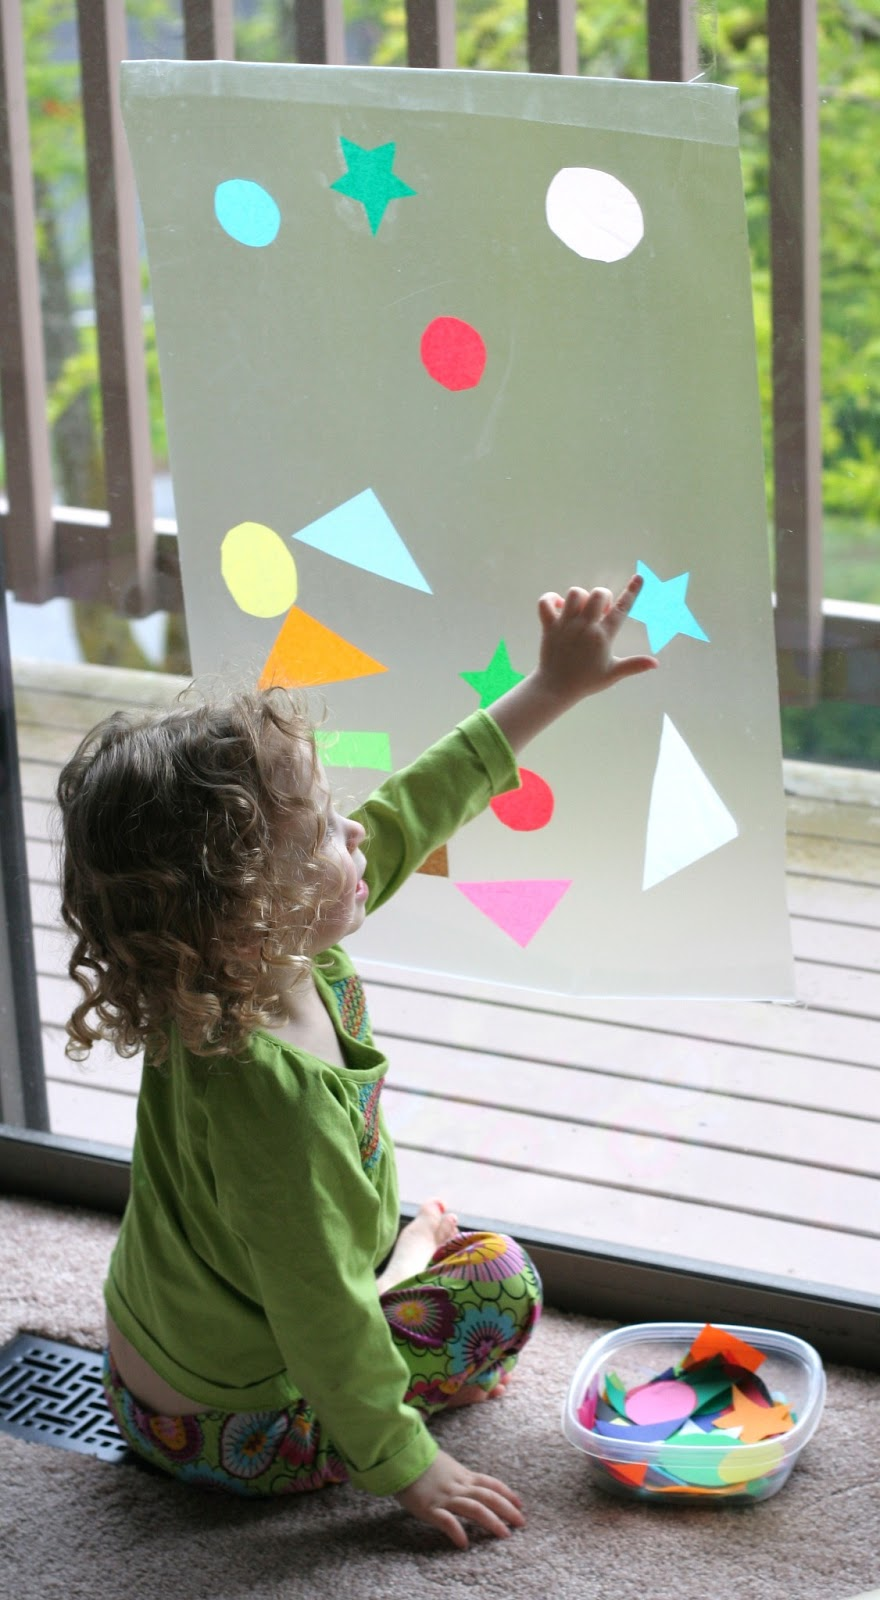 Contact paper window art for Cardboard activities for toddlers